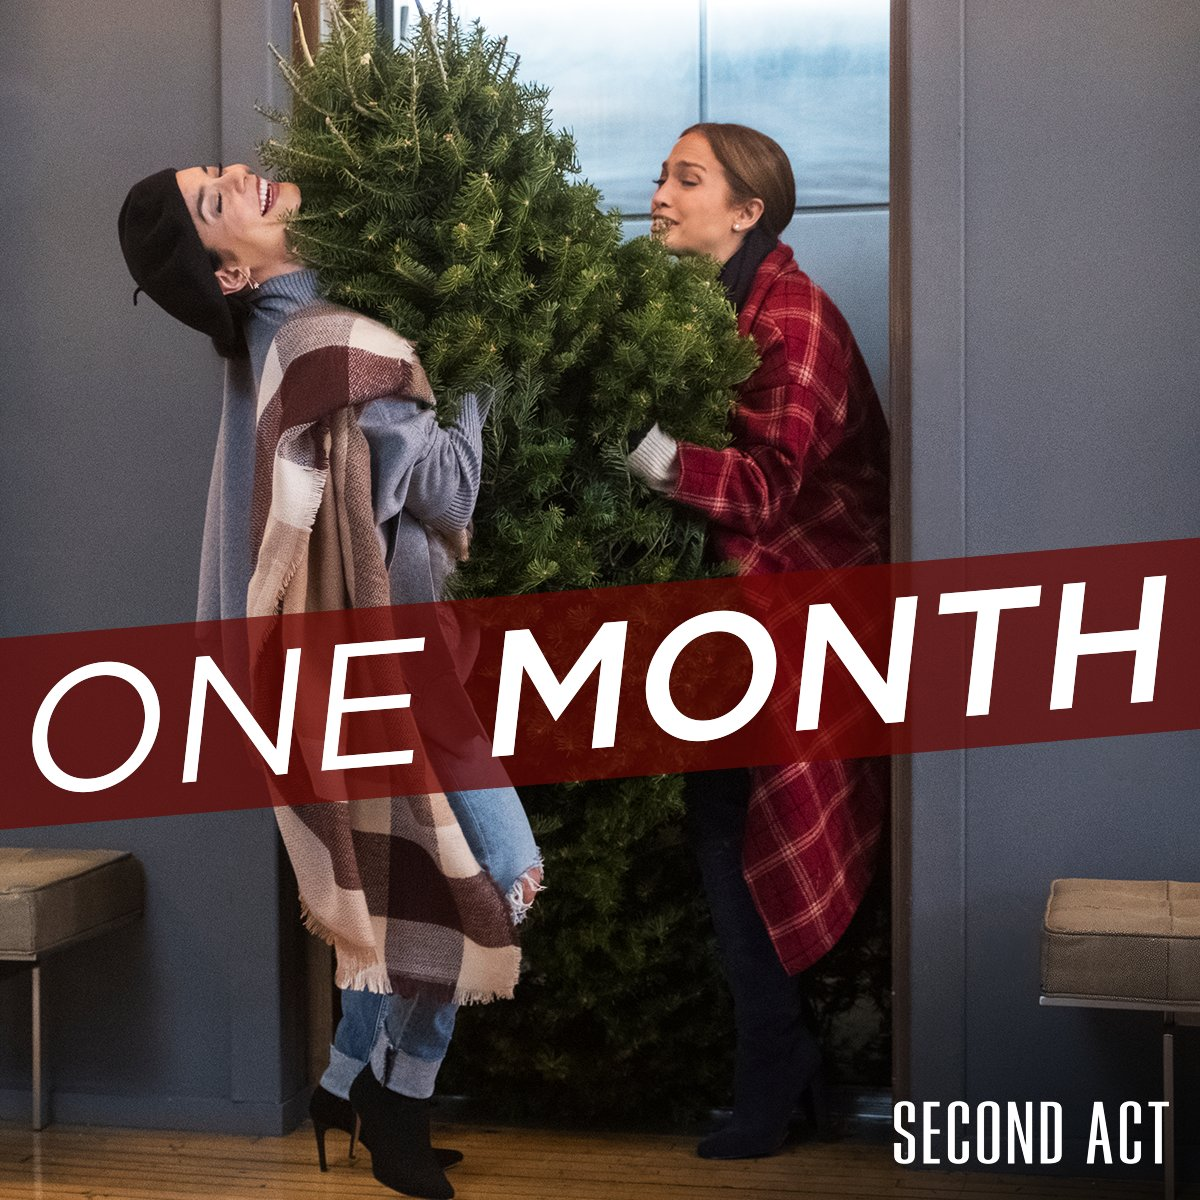 The countdown is on! Tag the friends who you're bringing to see #SecondAct in ONE MONTH!